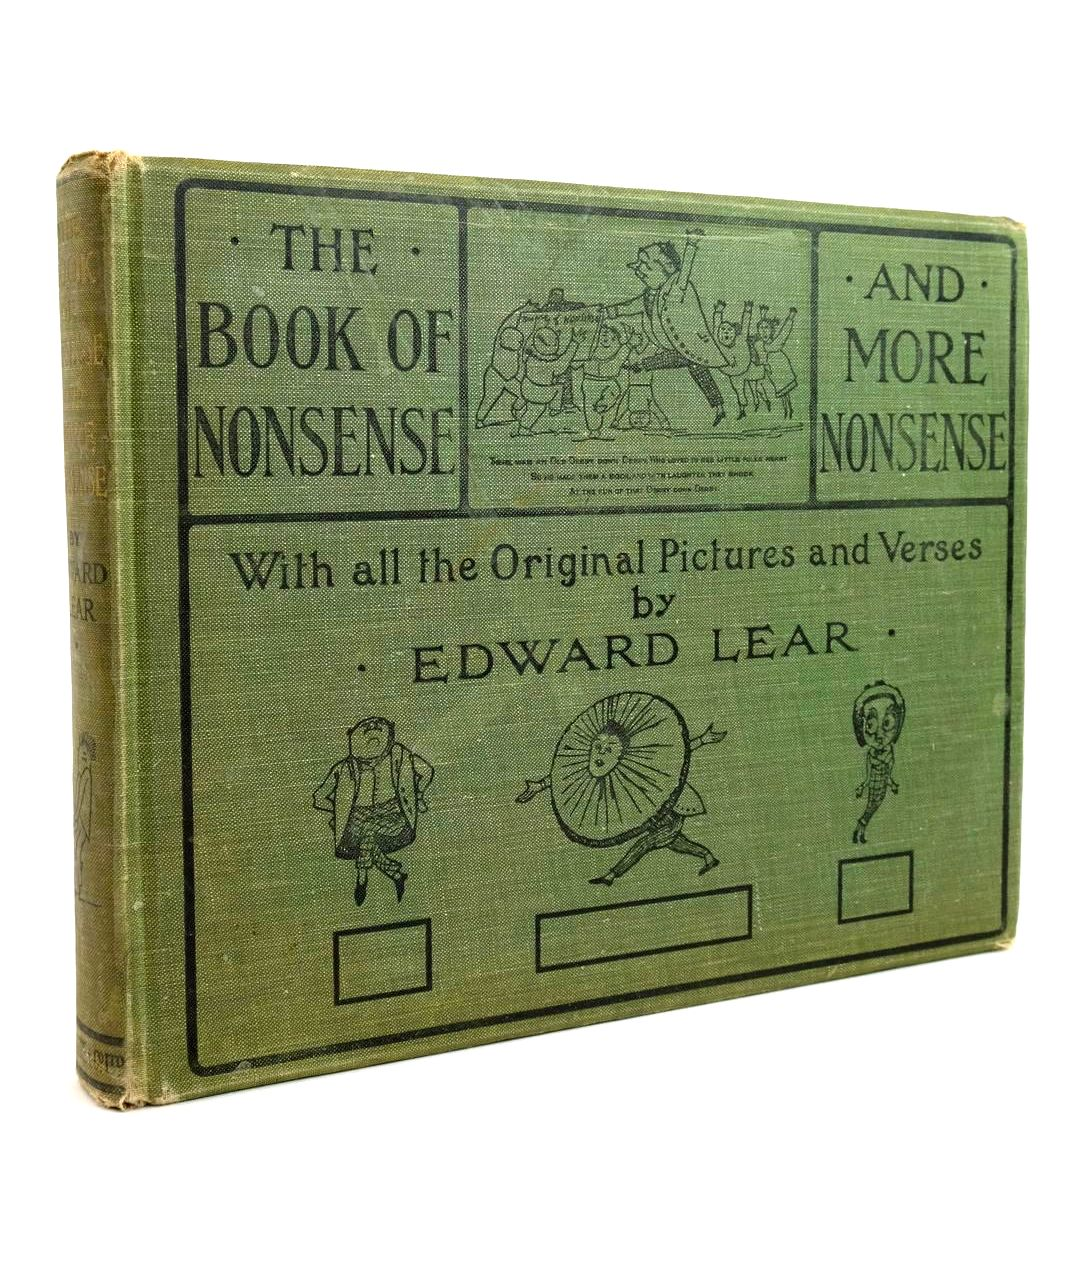 Photo of THE BOOK OF NONSENSE AND MORE NONSENSE- Stock Number: 1321694